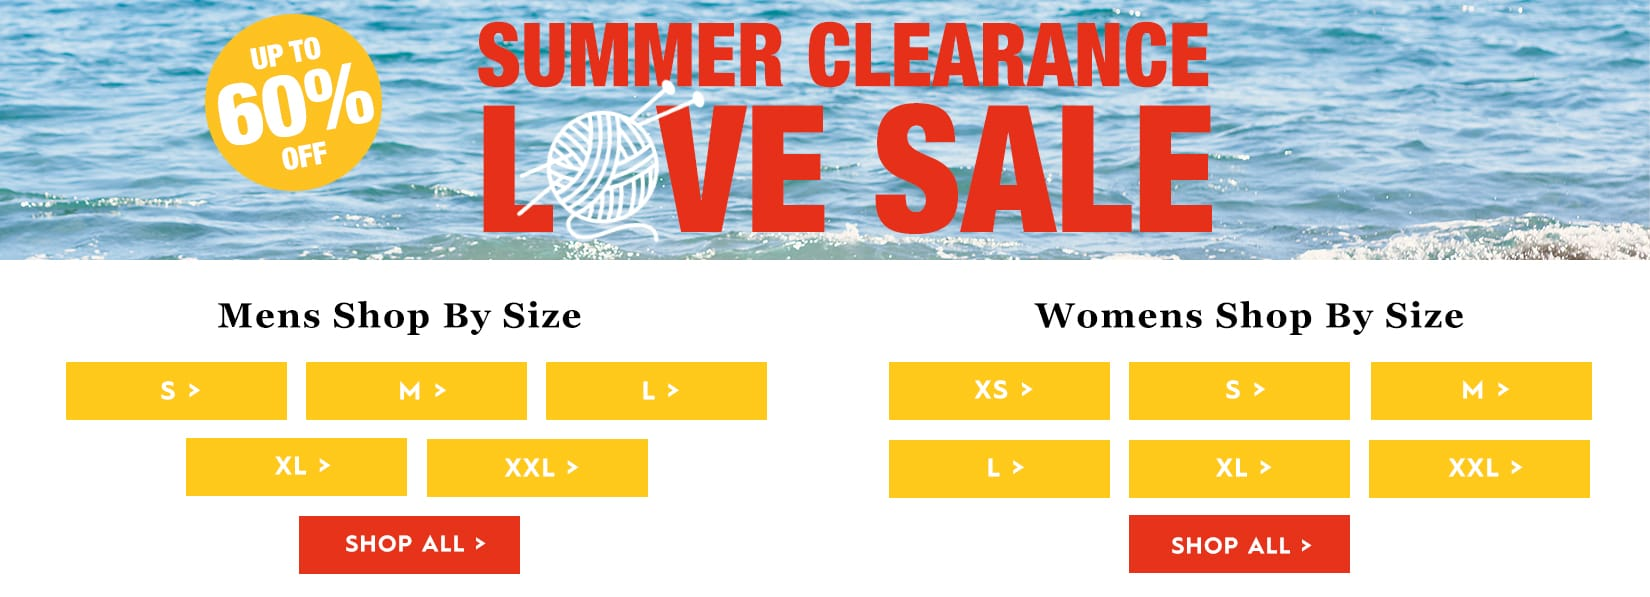 2d88c2bdb Clearance - Up to 60% Off | Men's and Women's Knitwear | WoolOvers